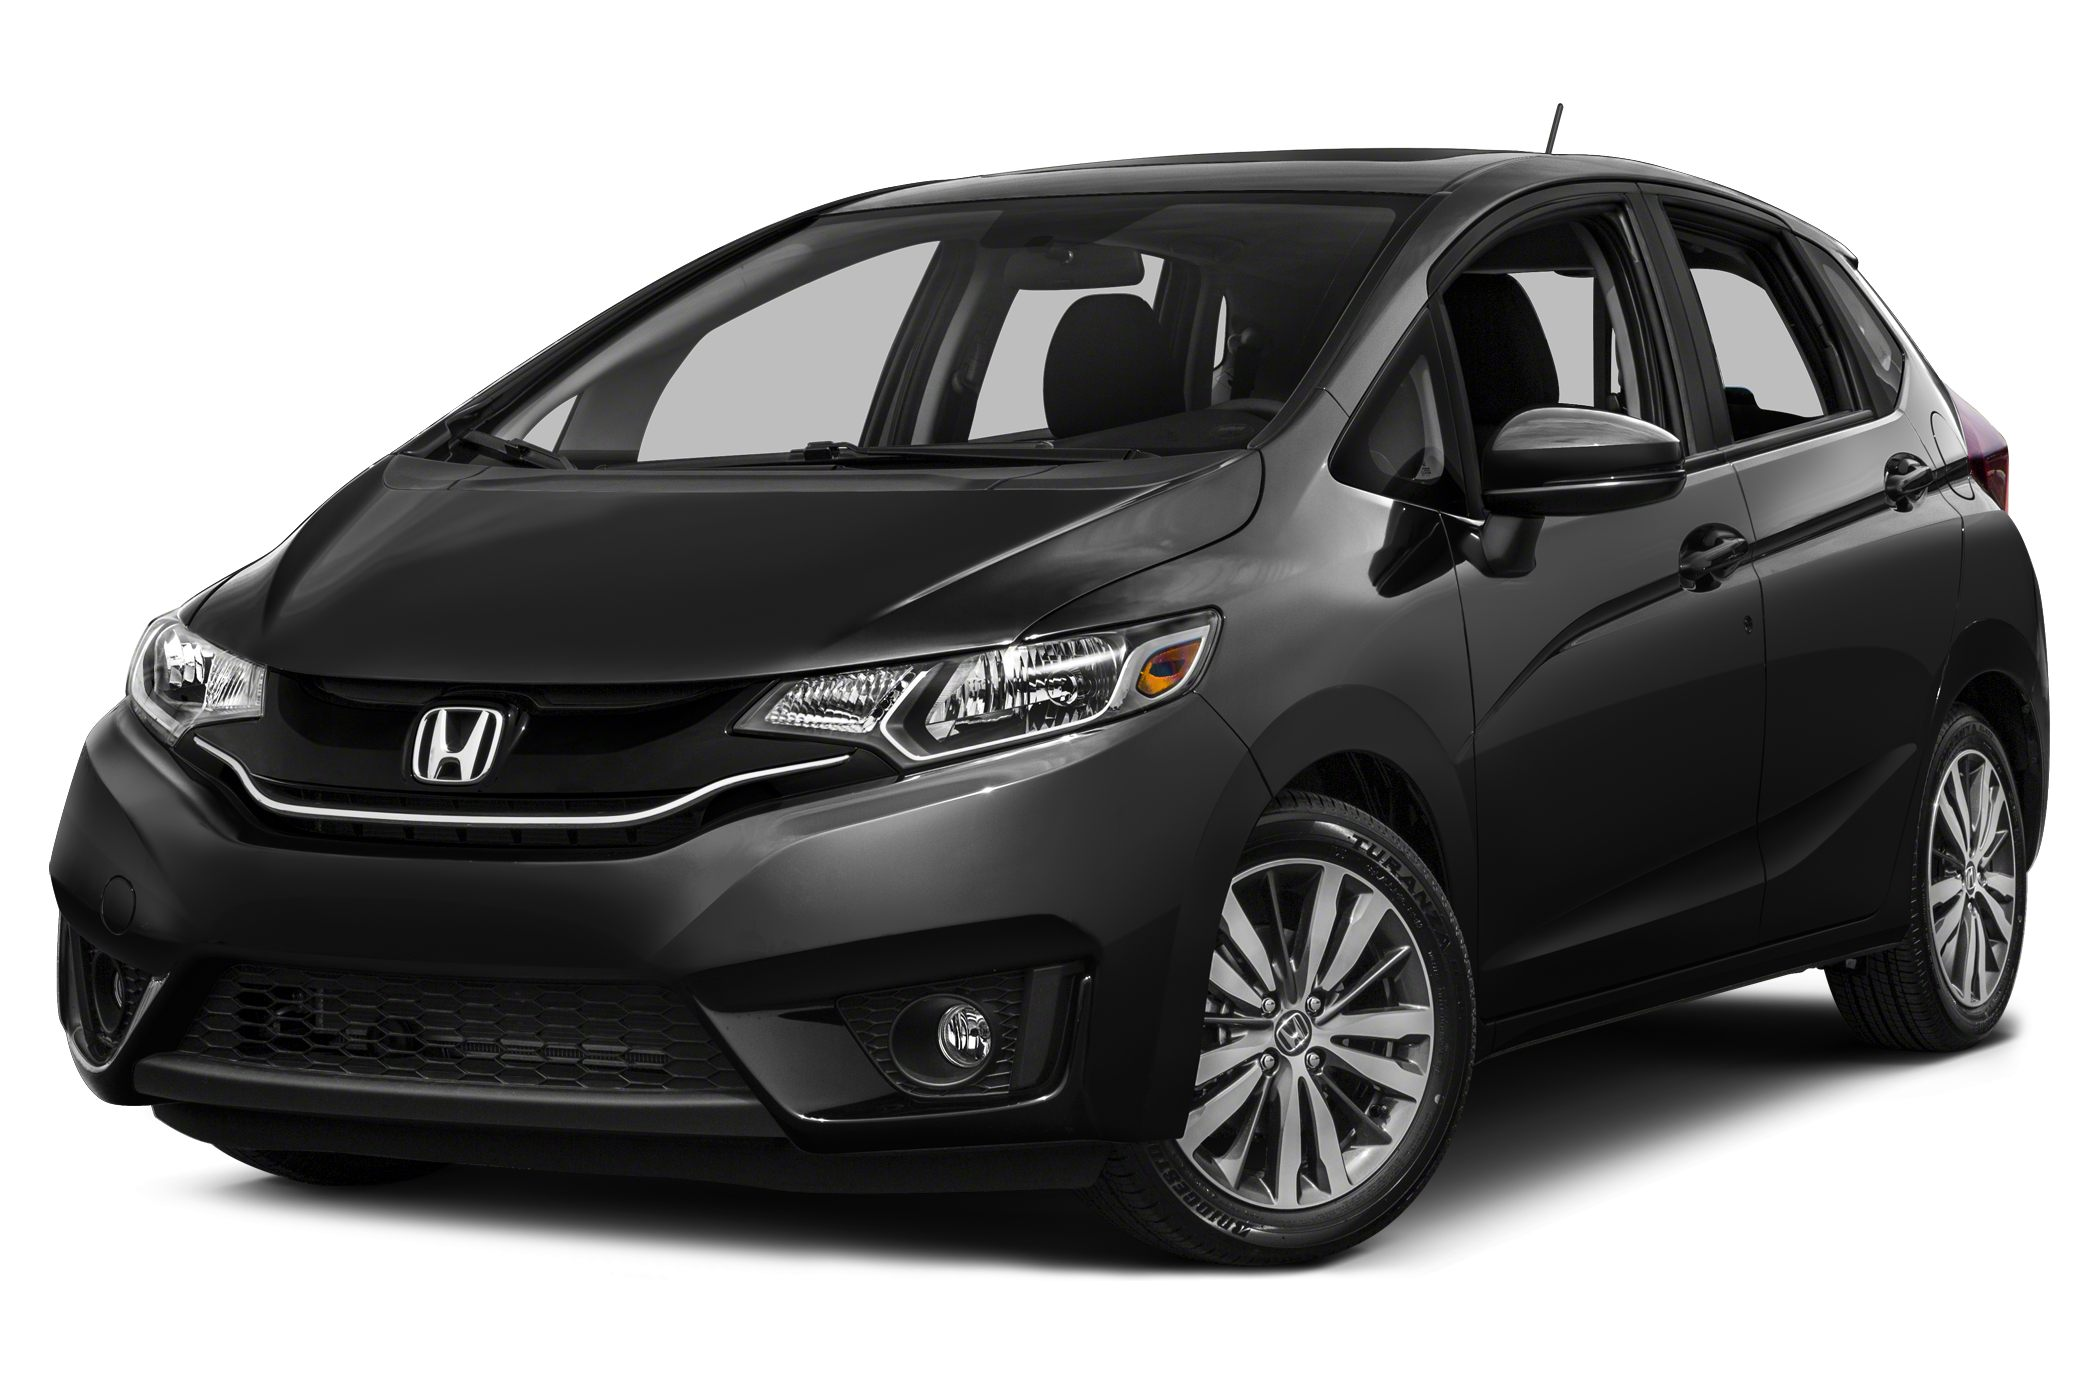 2015 Honda Fit EX-L Hatchback for sale in Aberdeen for $20,999 with 6,854 miles.